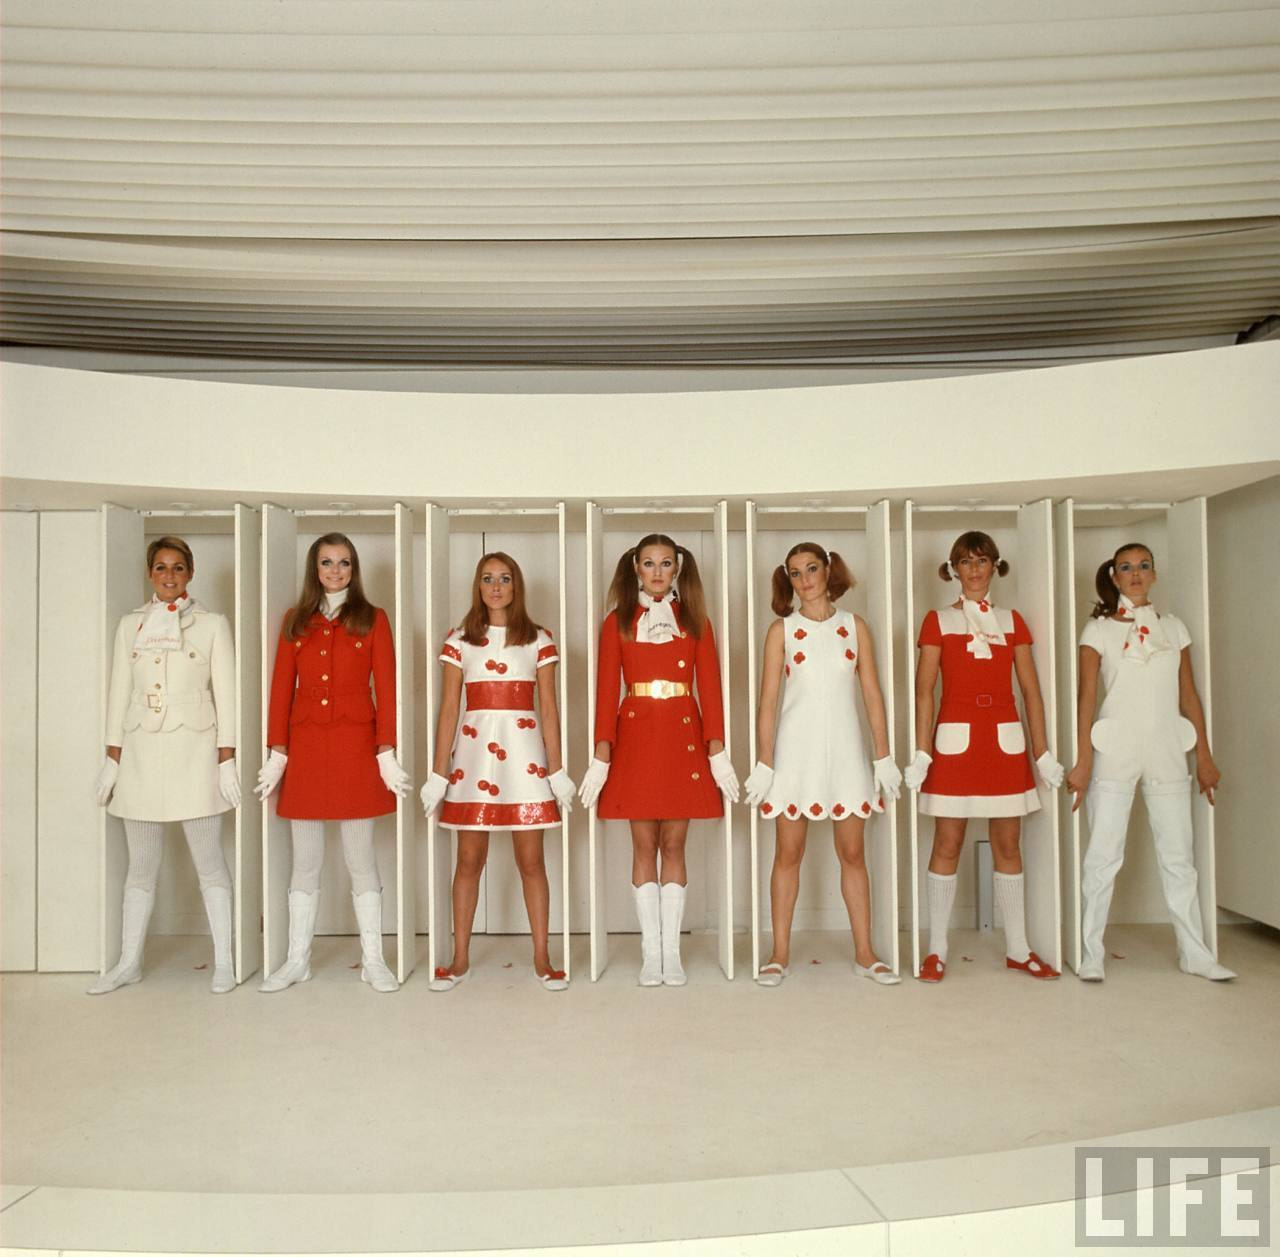 Models wearing red and white ready-to-wear fashions designed by Andre Courreges.